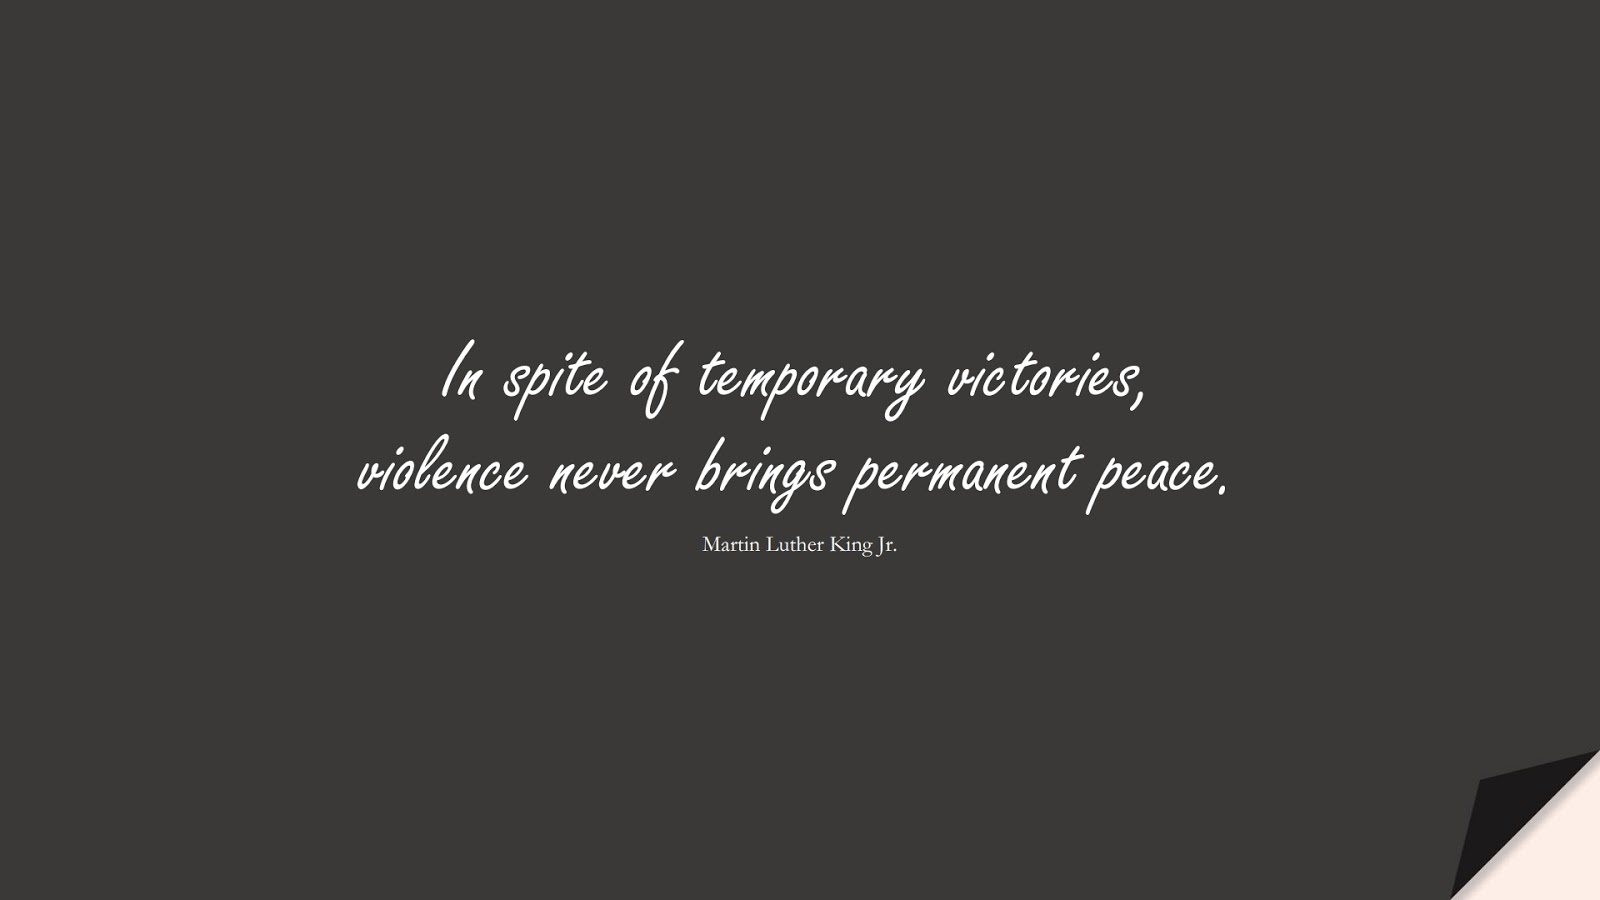 In spite of temporary victories, violence never brings permanent peace. (Martin Luther King Jr.);  #MartinLutherKingJrQuotes